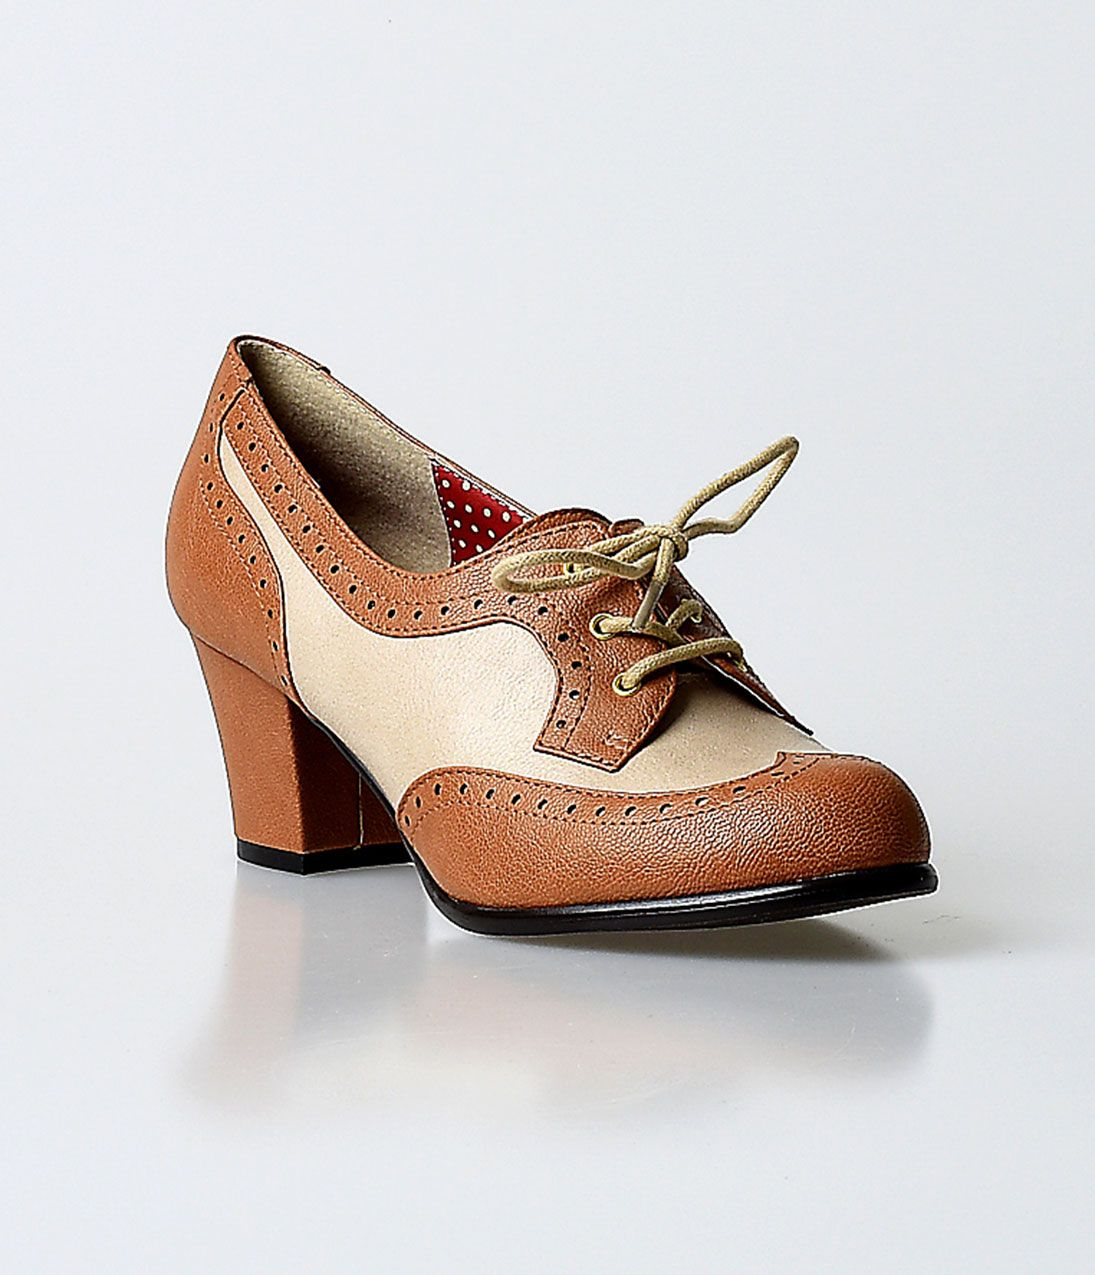 Brown cream 1940s oxford shoes. B.A.I.T. 1940s Camel Faux Napa Leather  Remmy Oxford Pumps $72.00